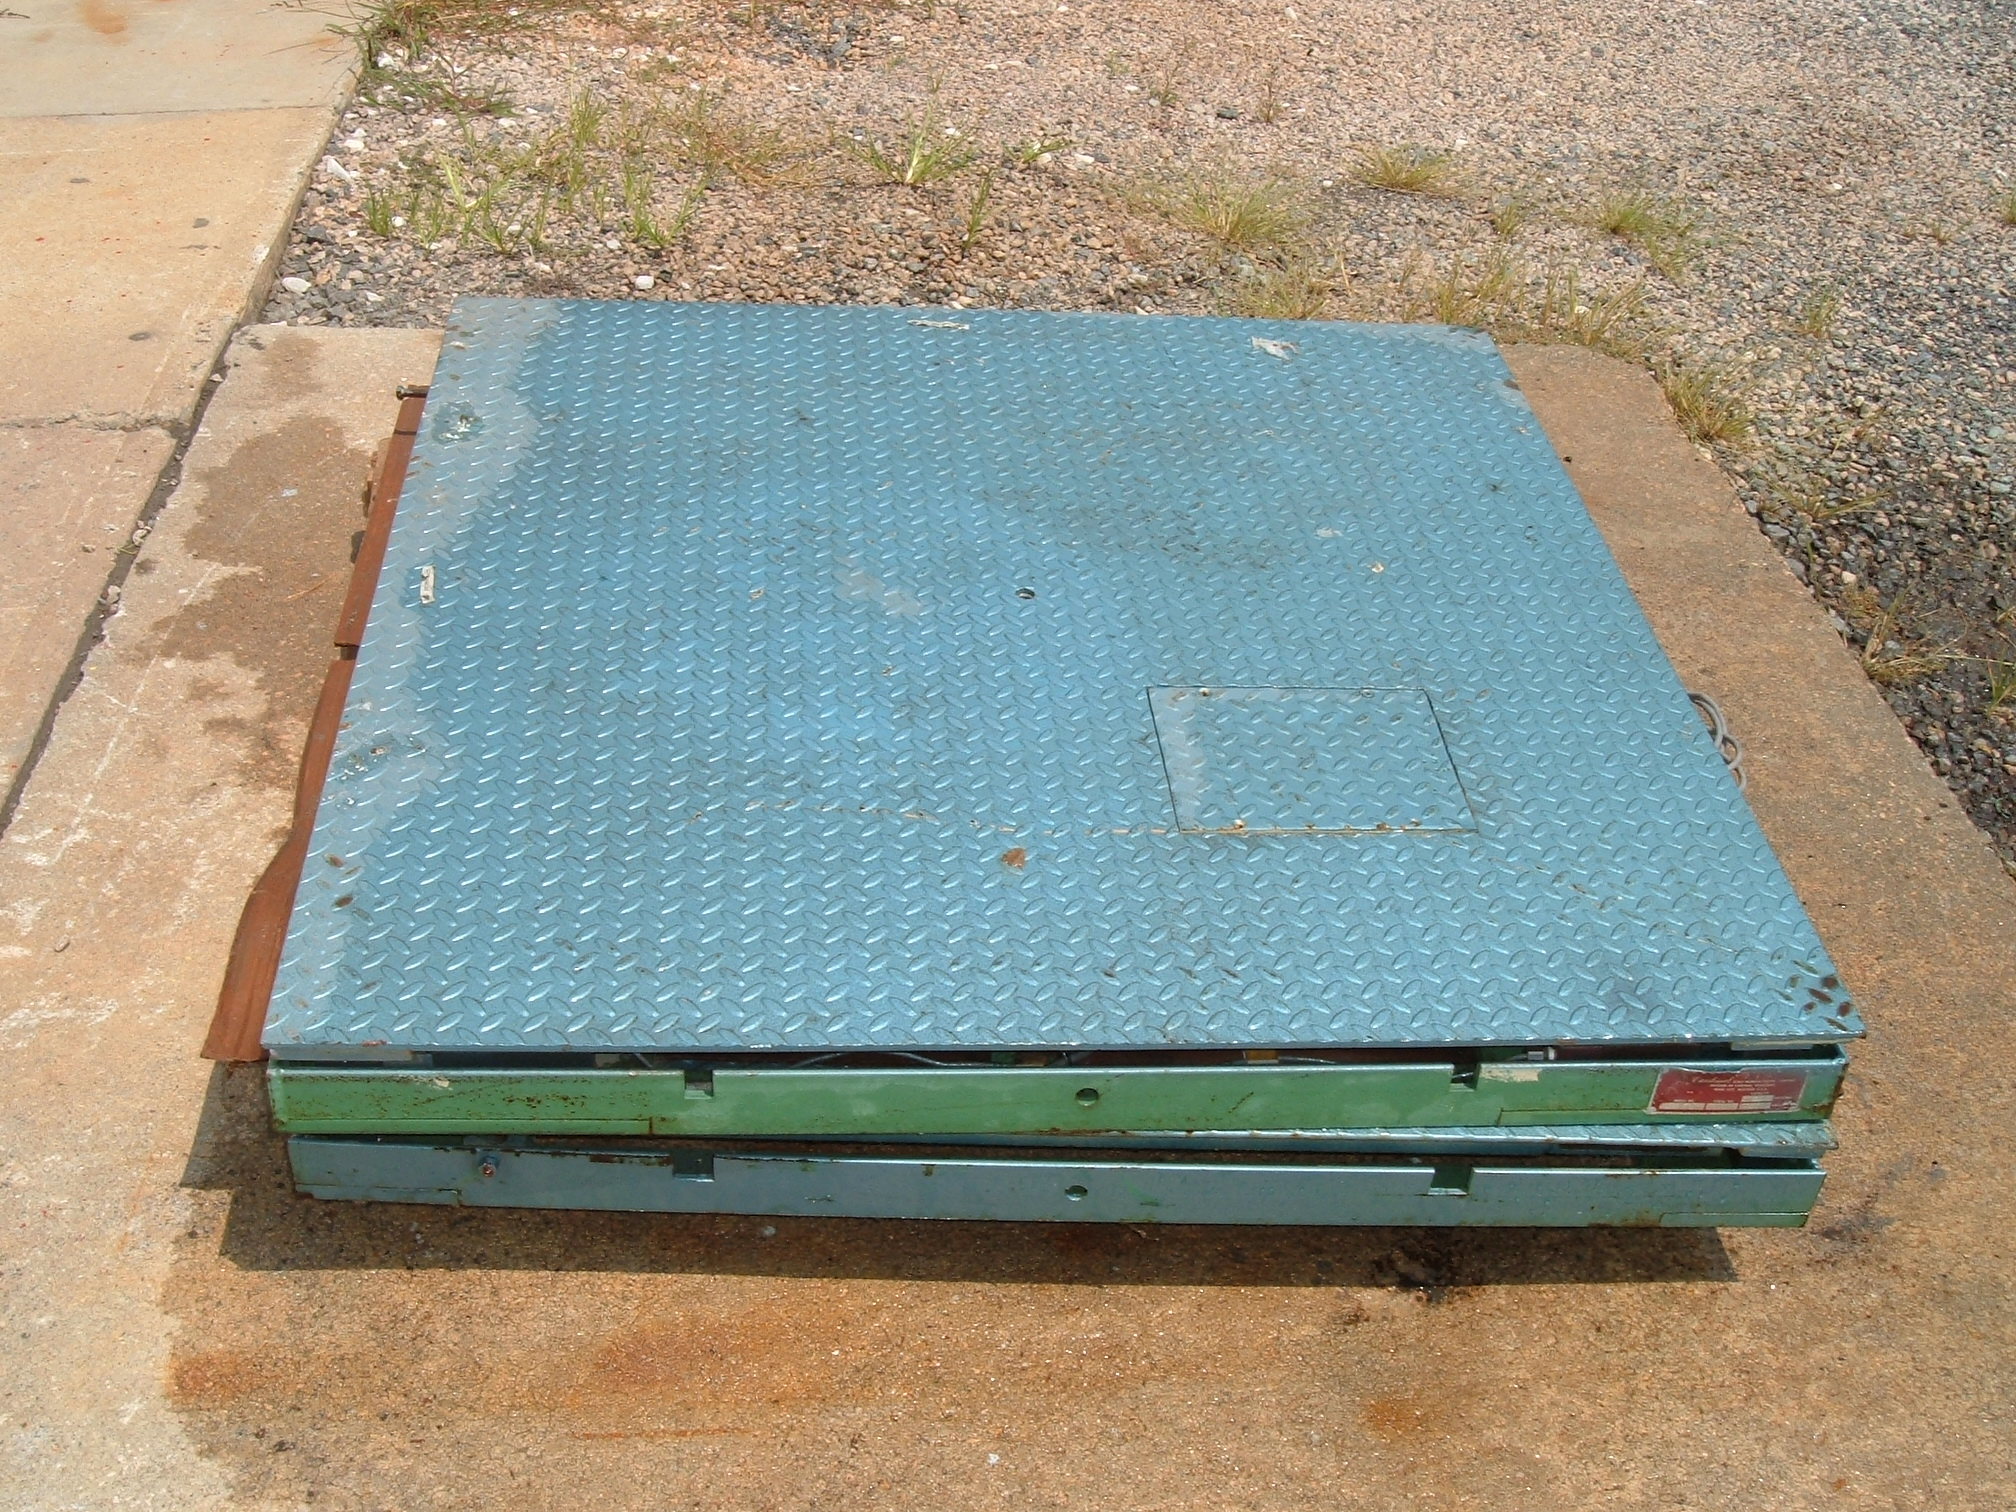 4X4 PLATFORM SCALES, NO READOUTS, JUST PLATFORMS, 5000# CAPACITY